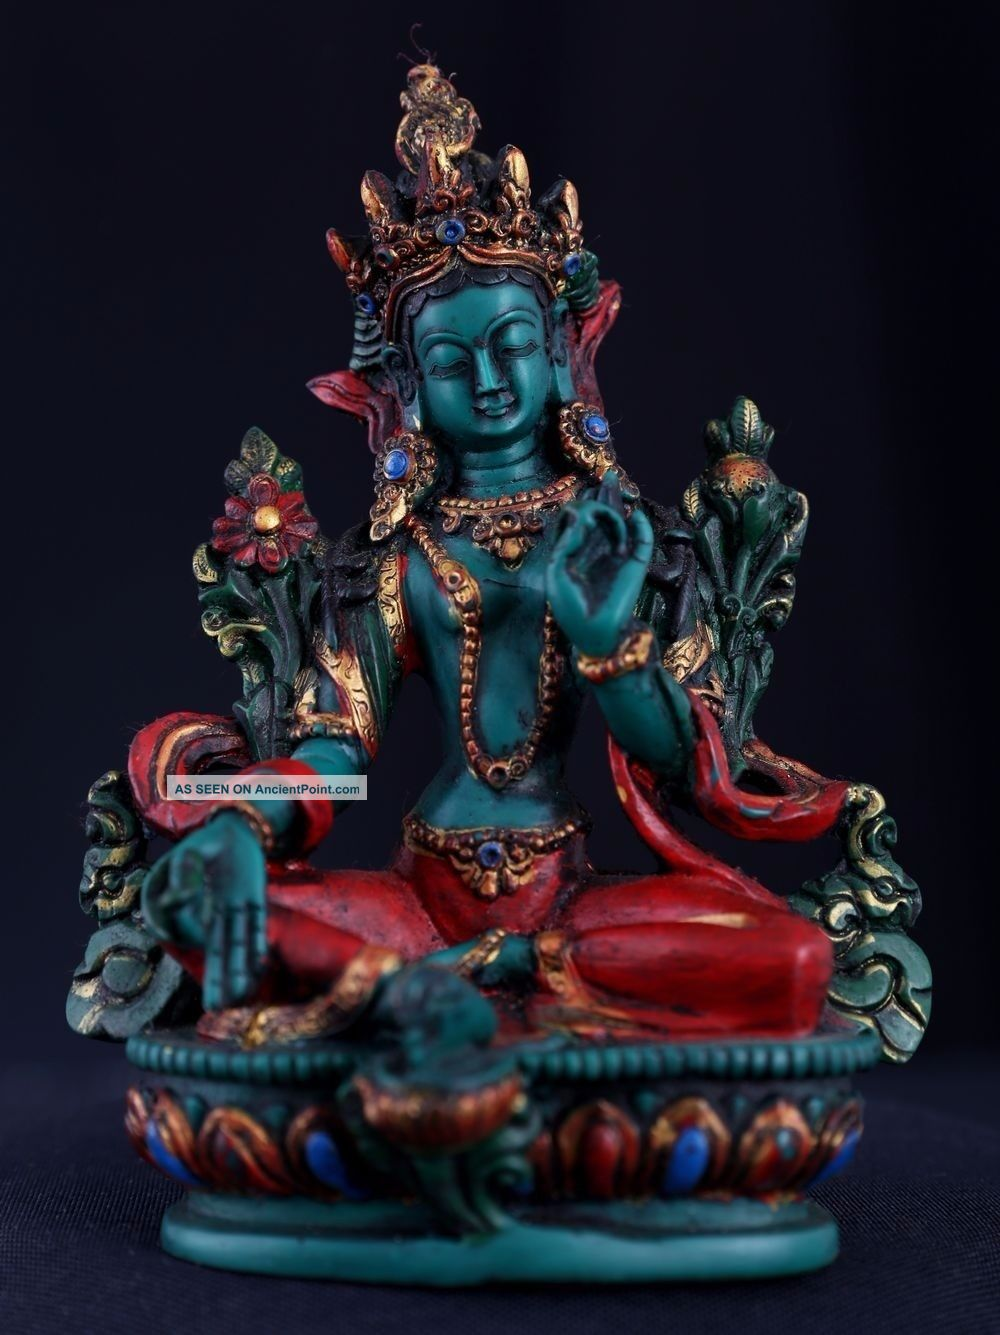 Exquisite Rare Old Chinese Lacquerware Buddha Seated Statue Sculpture Ab050 Figurines & Statues photo